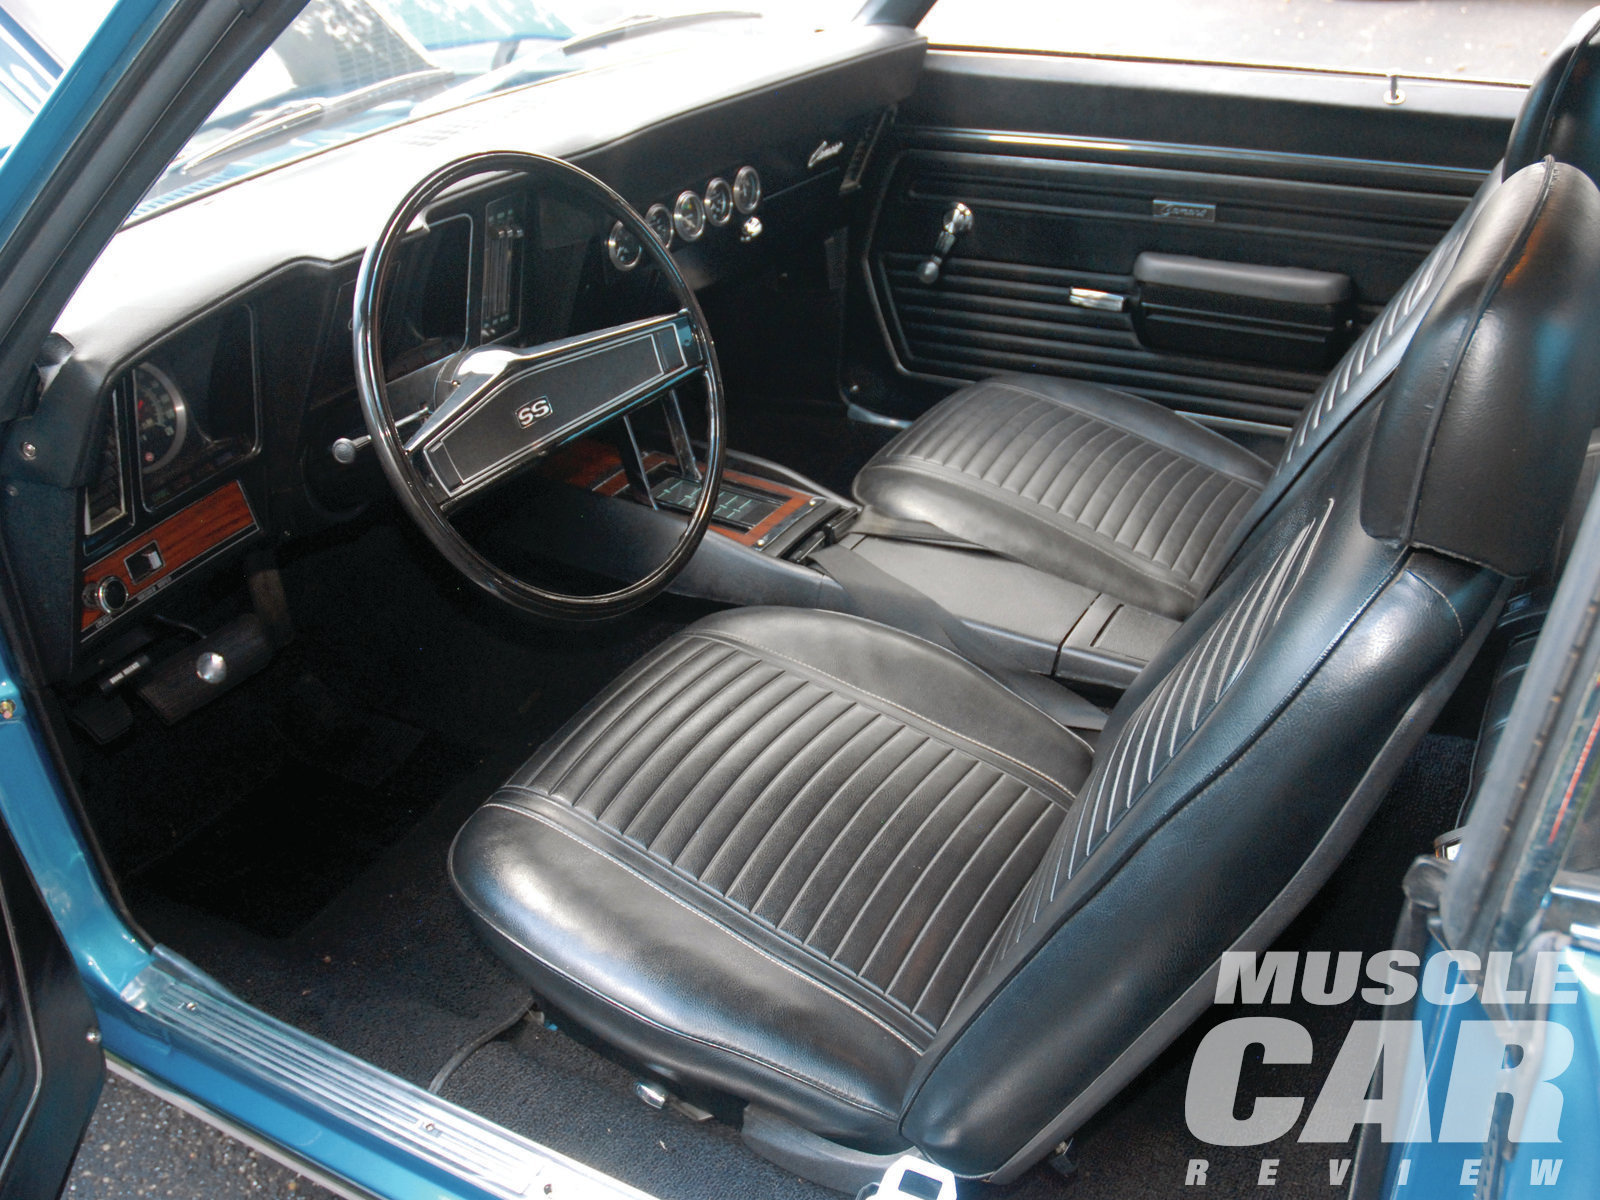 The original black vinyl, high-back bucket seat interior is still with the car. The only thing that needed to be replaced was the carpeting.